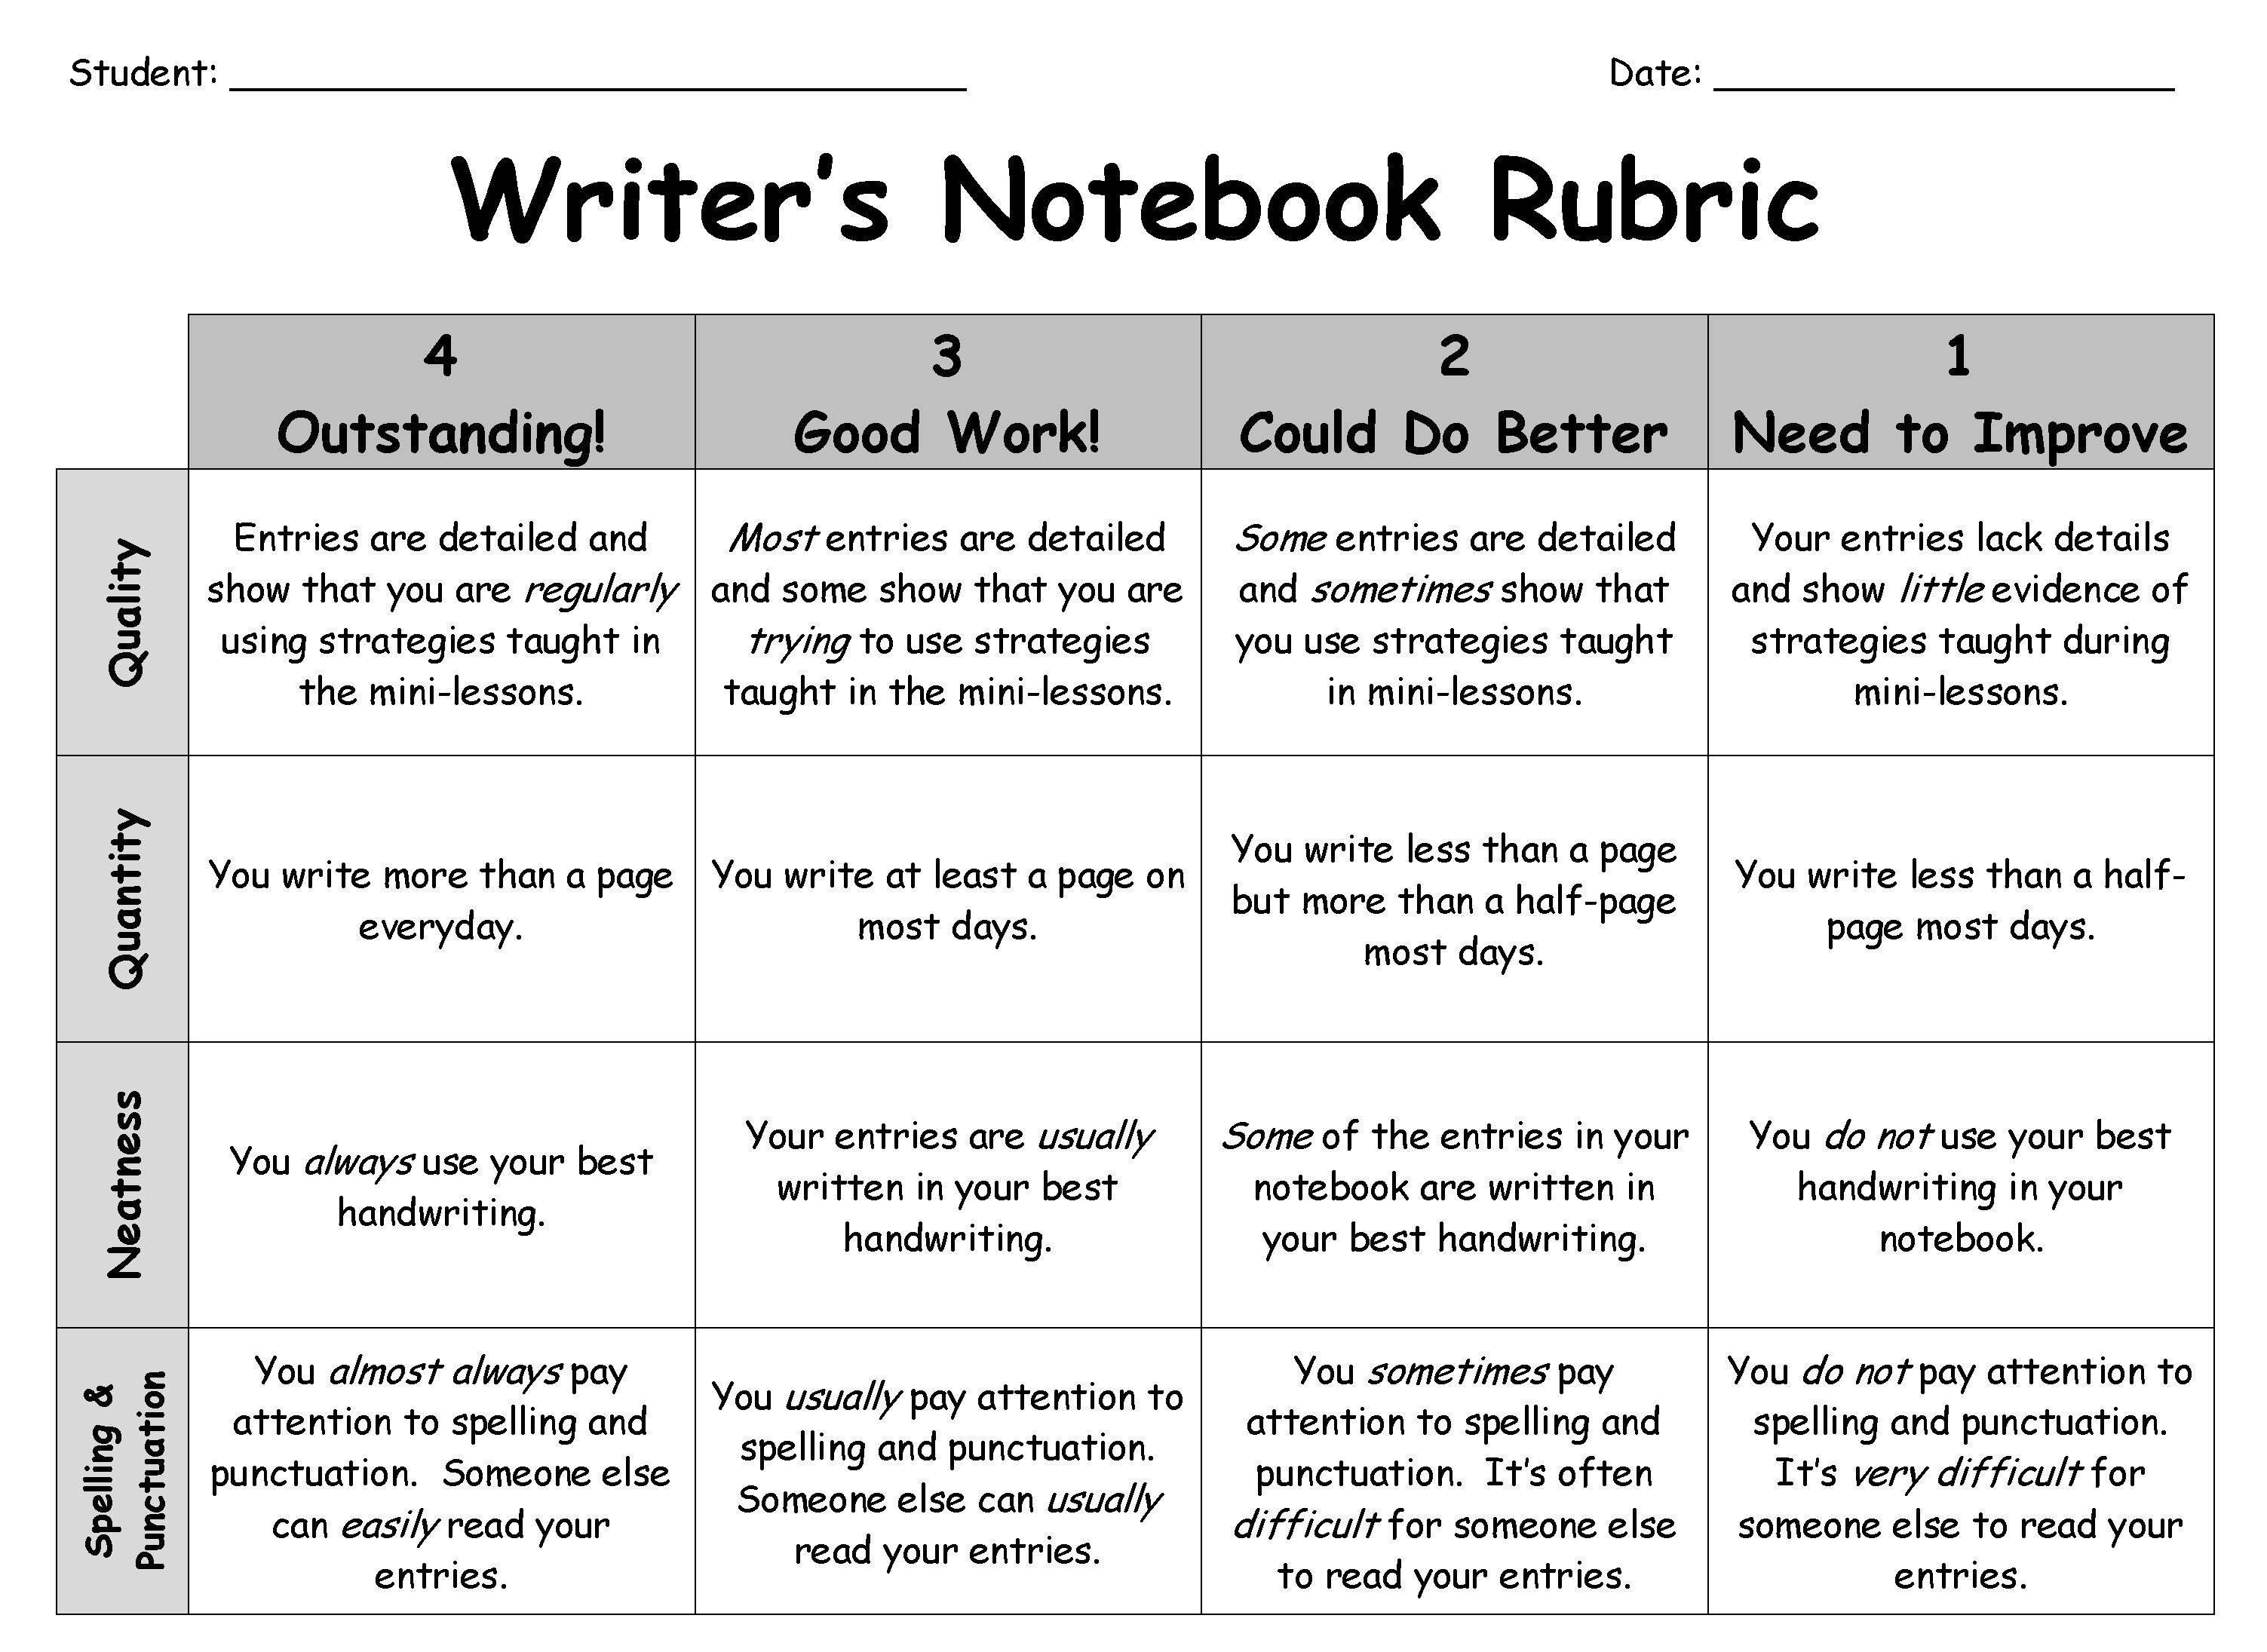 rubric creative essay